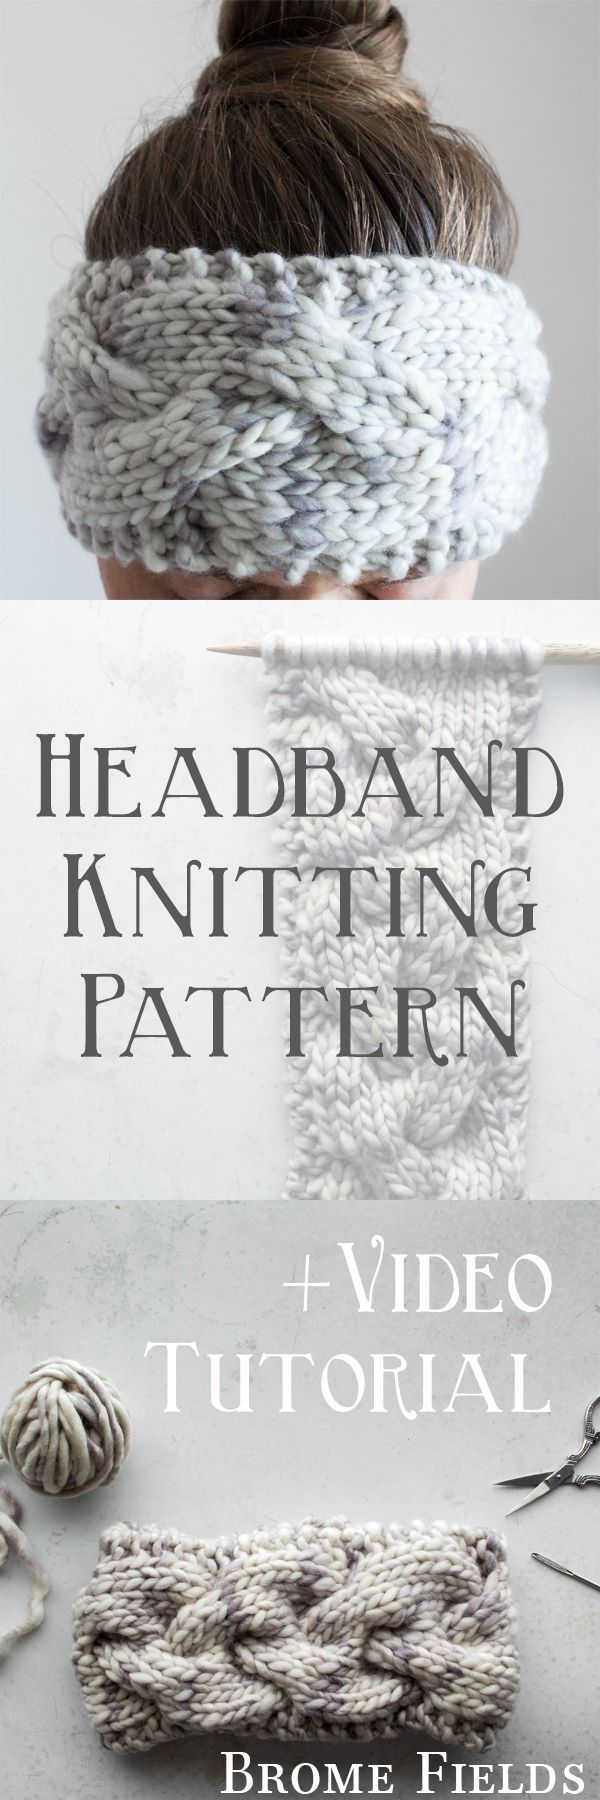 Headband Knitting Pattern : Braided Cable Knit Sti…